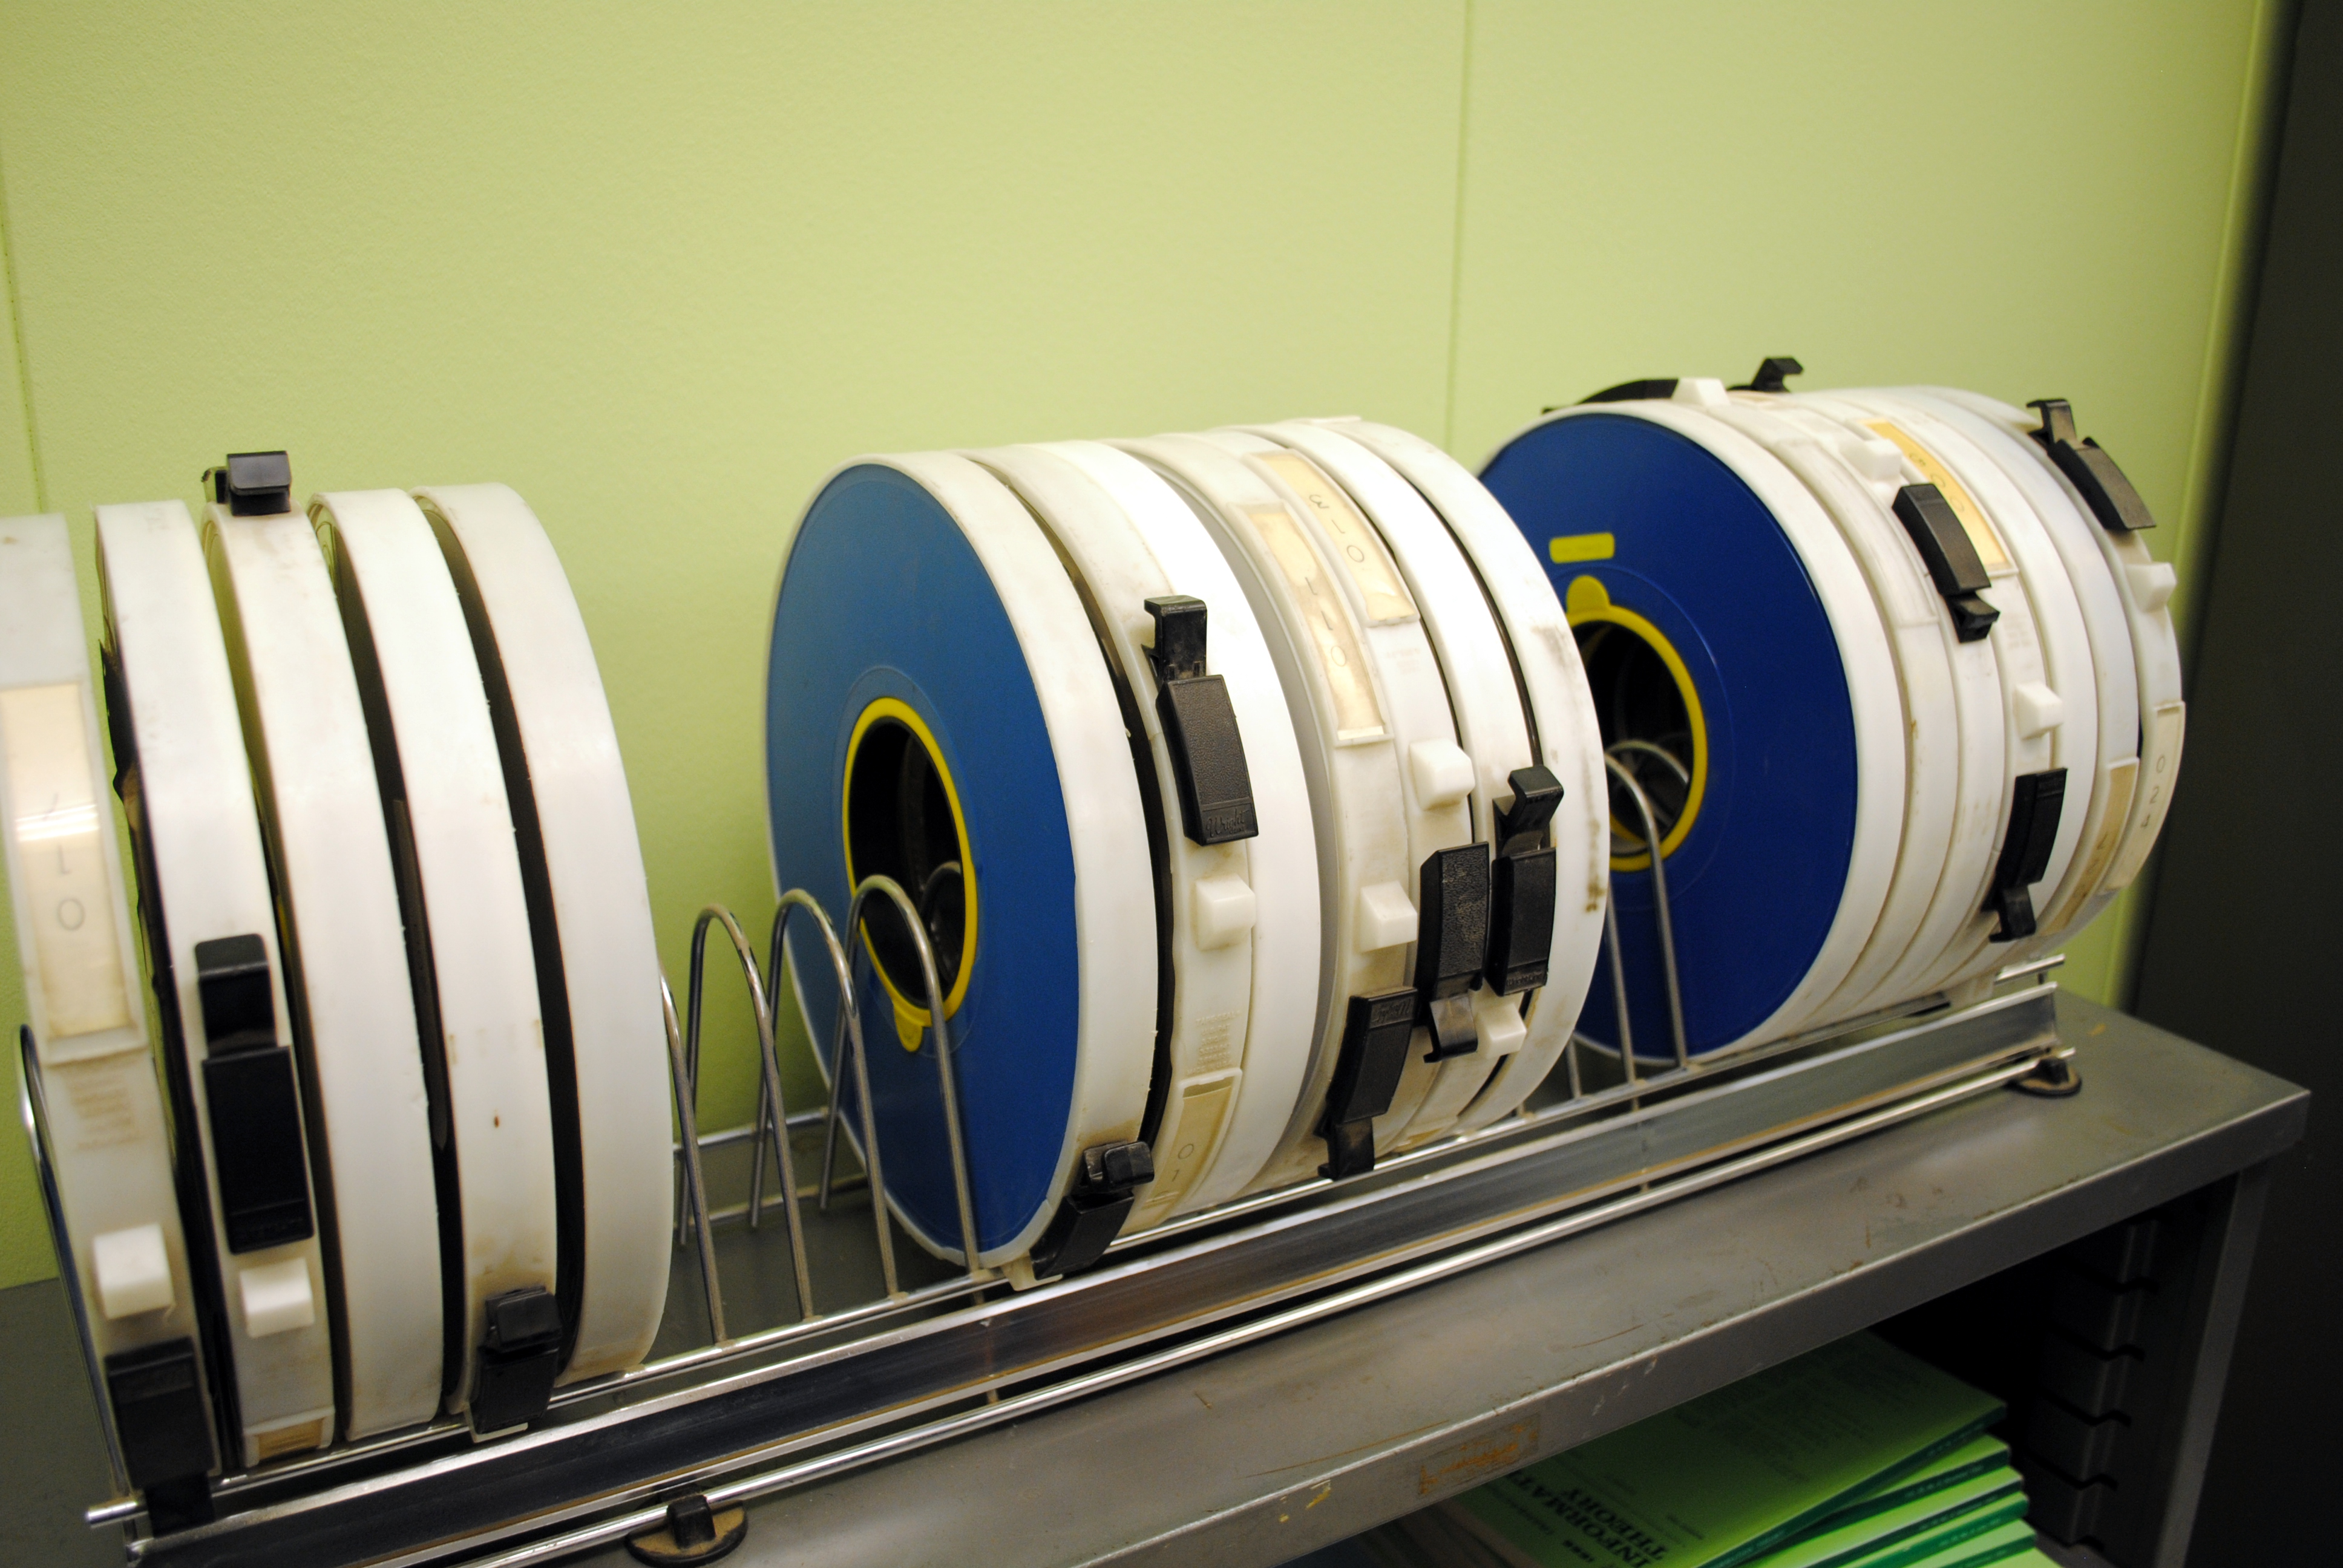 English Magnetic tapes of the SDS Sigma 7 mainframe computer.